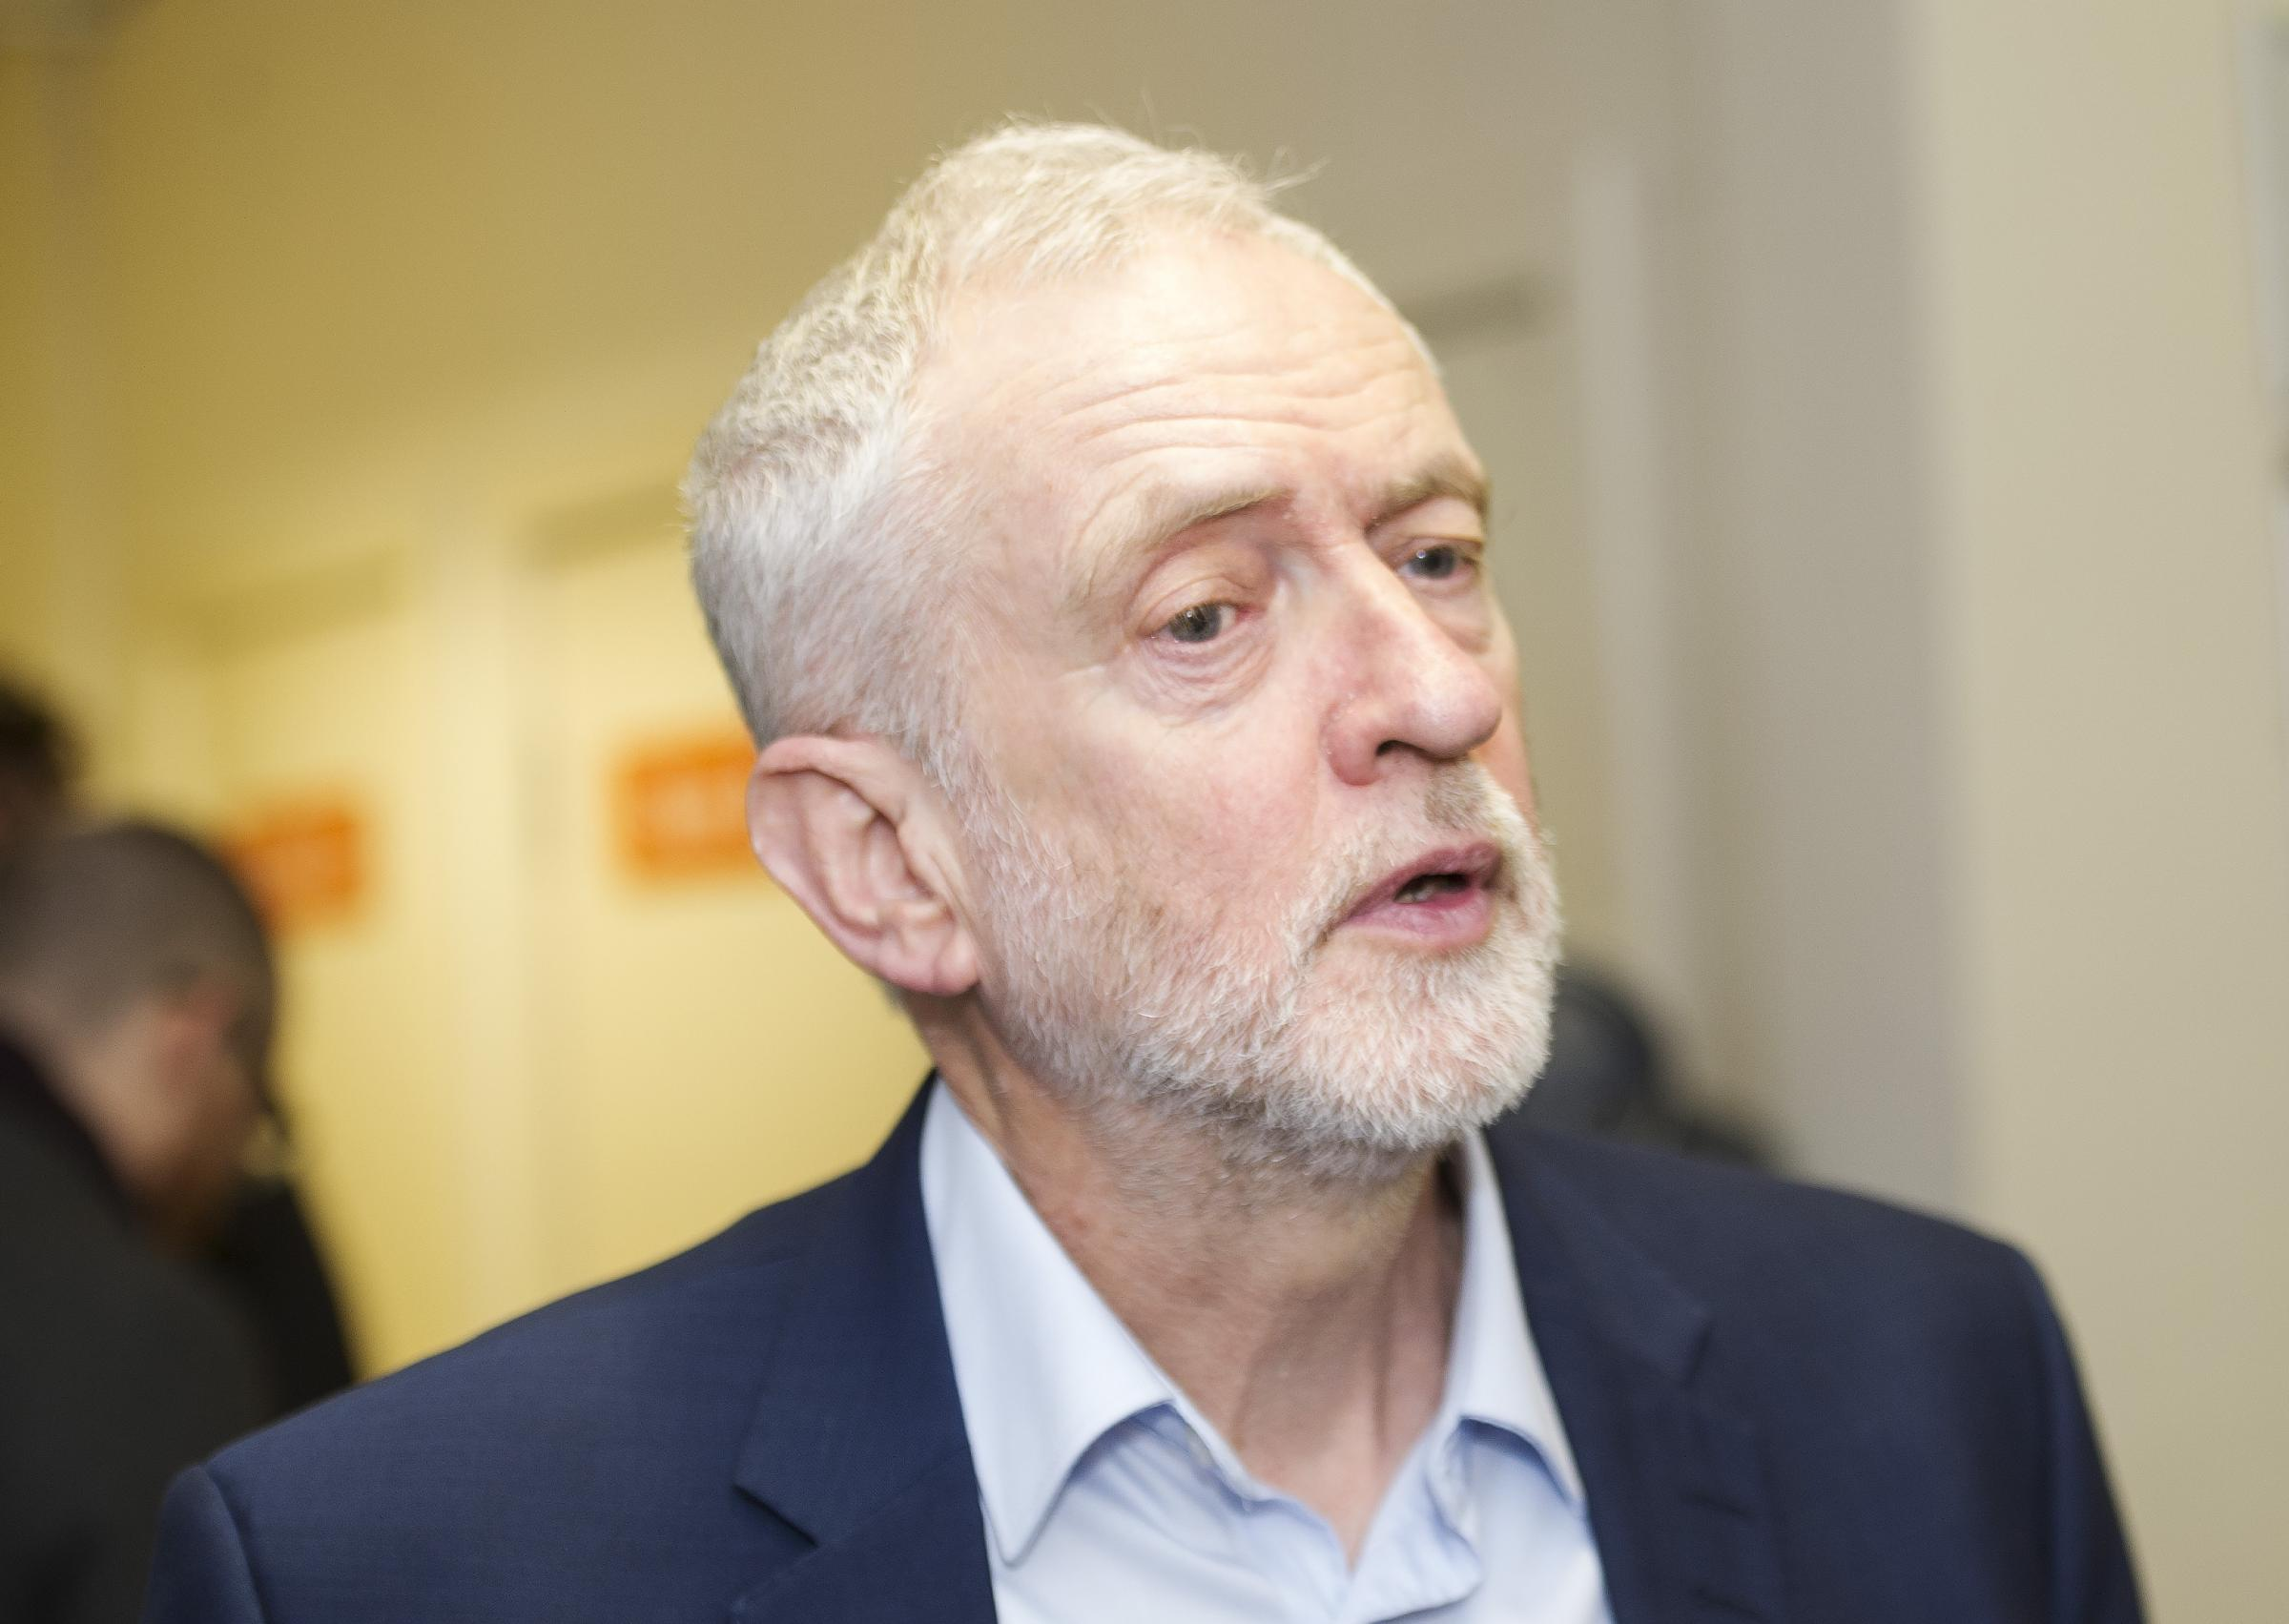 UK Jewish newspapers warn Corbyn poses 'existential threat' to British Jewry